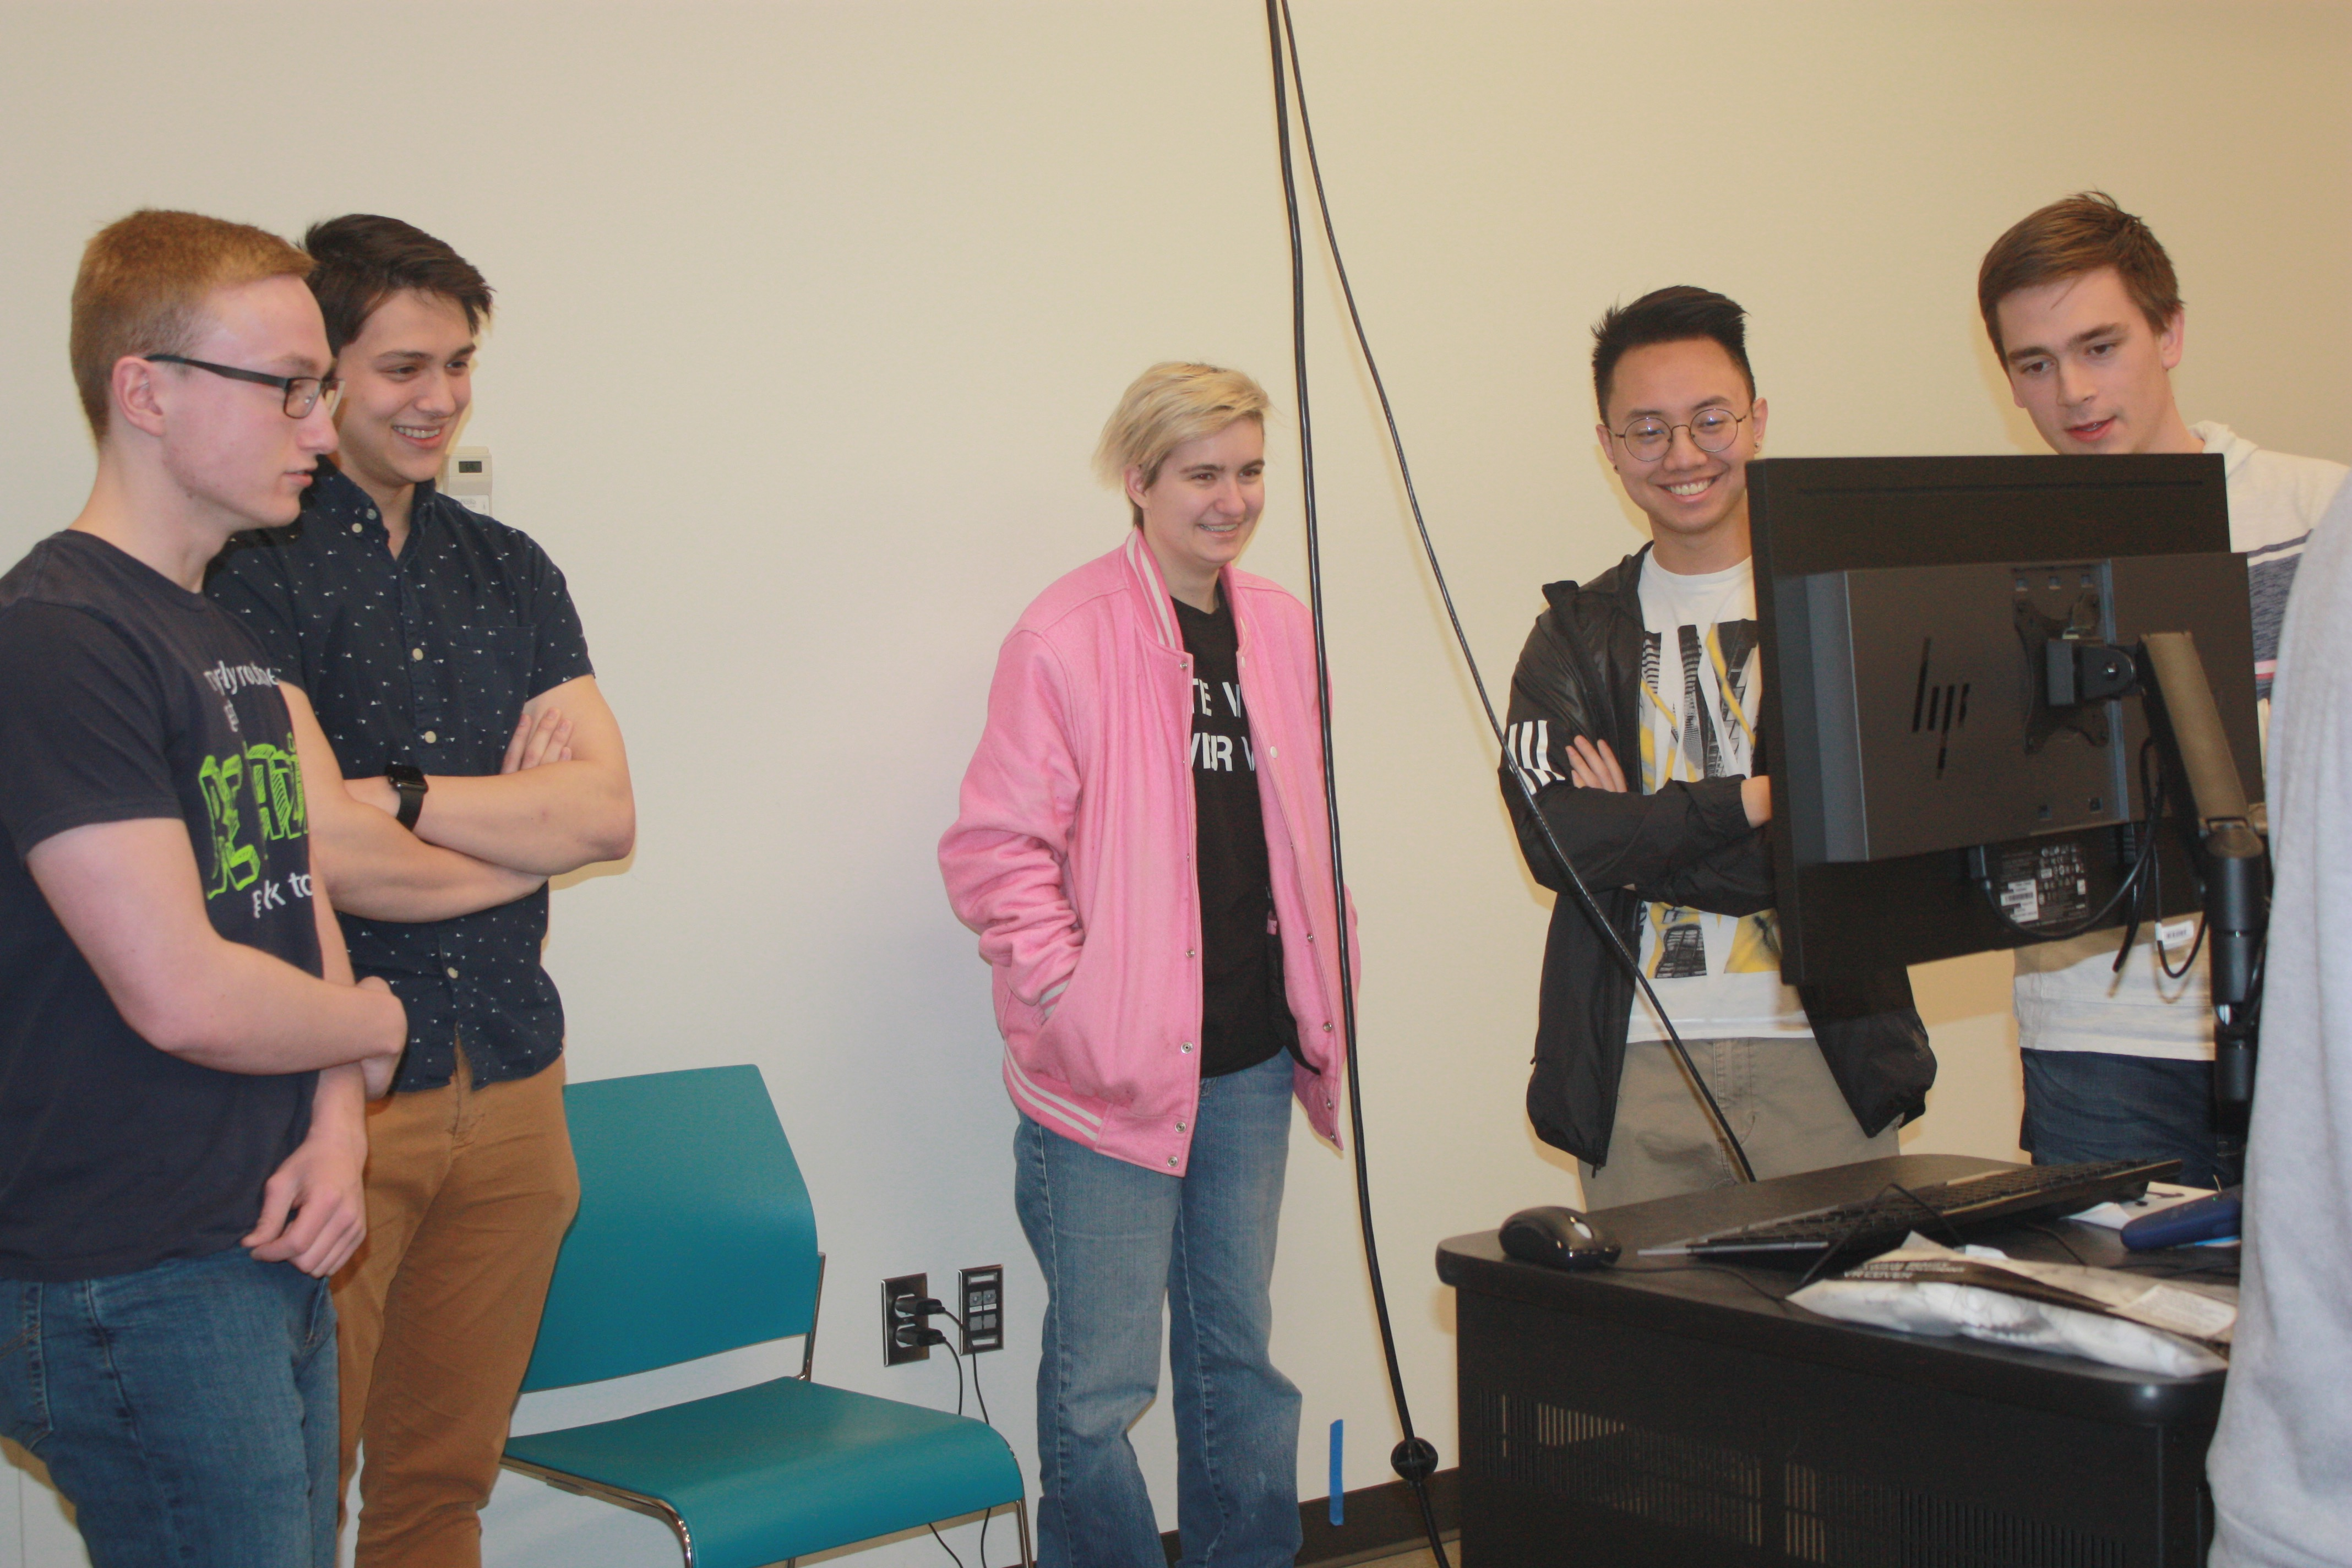 Members of the Platinum Award-winning baldorf team view the VR portion of their project.